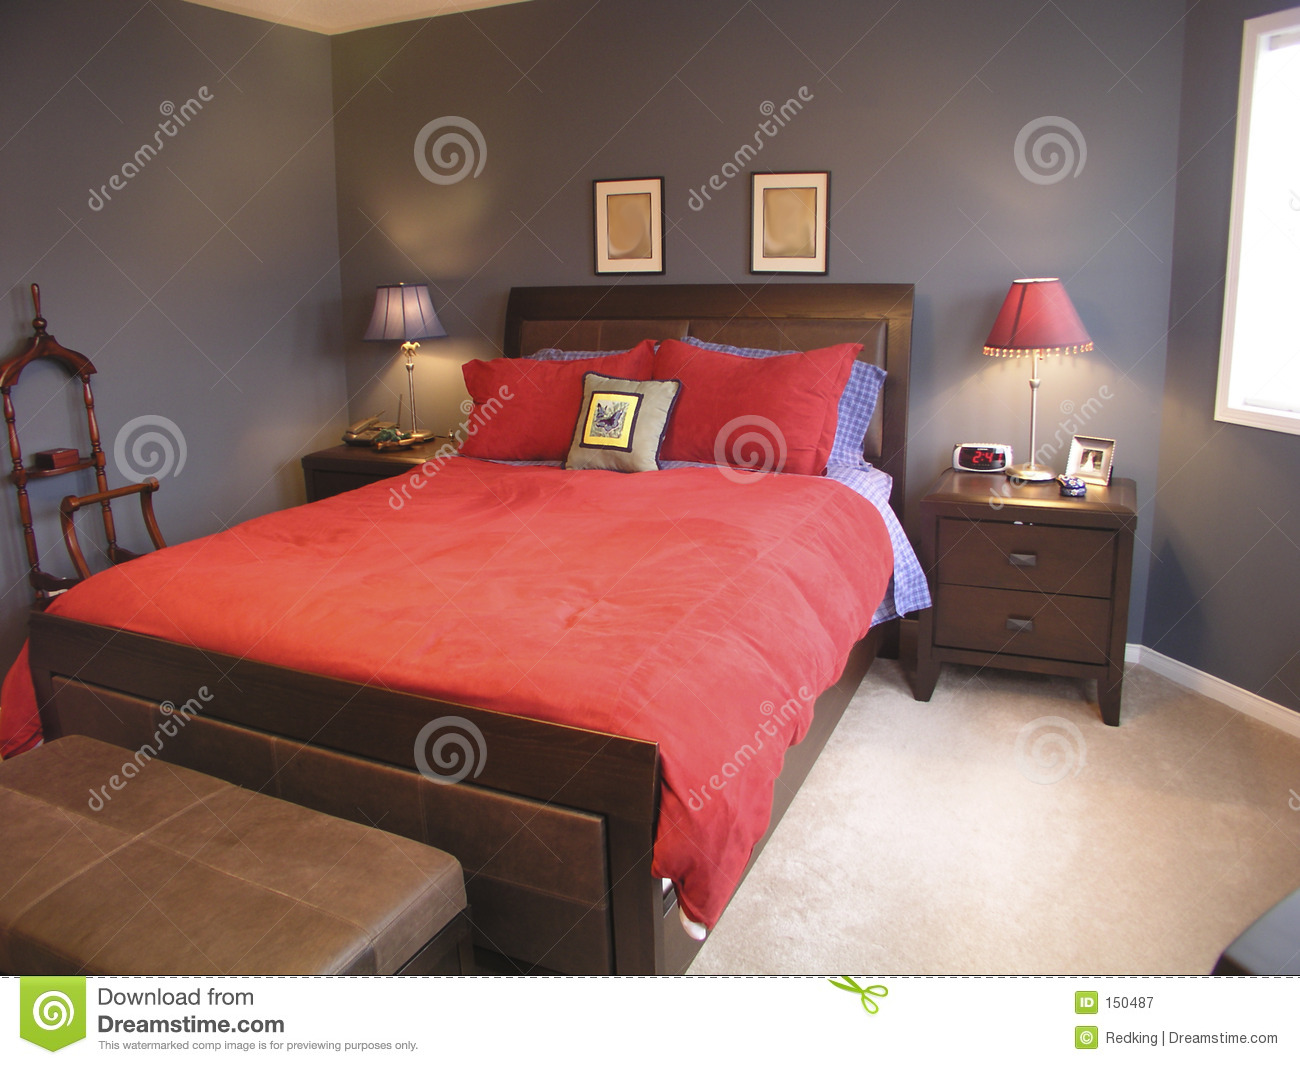 Master bedroom in red 03 royalty free stock photography image 150487 Master bedroom with red bedding